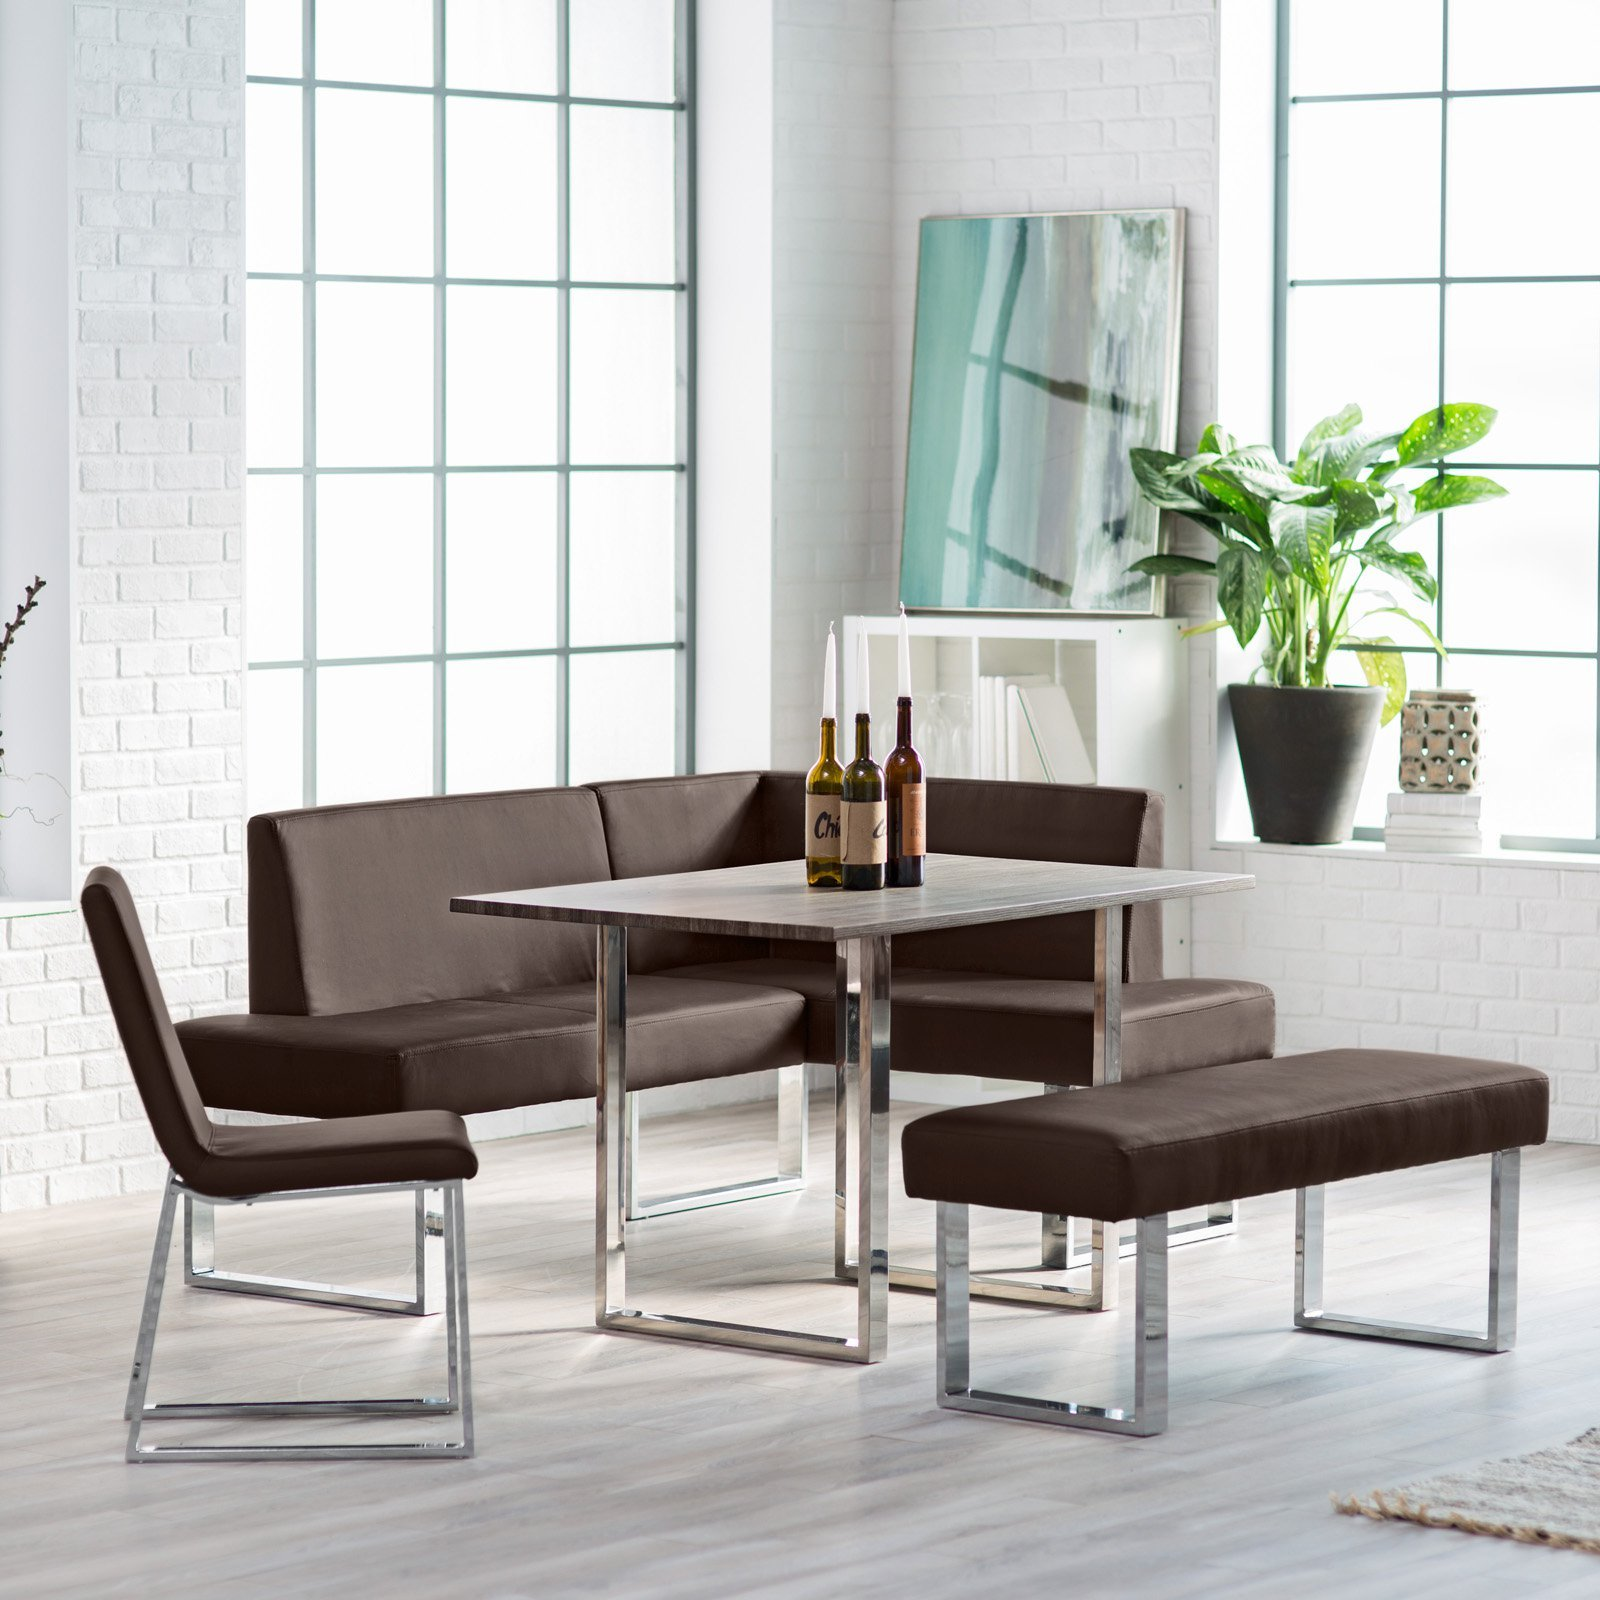 Kitchen Nook Dining Set with Bench Chair Table with Chrome Legs Seats up to 6 People Fresh Modern Breakfast Loft Area Plus by Breakfast Nook Furniture